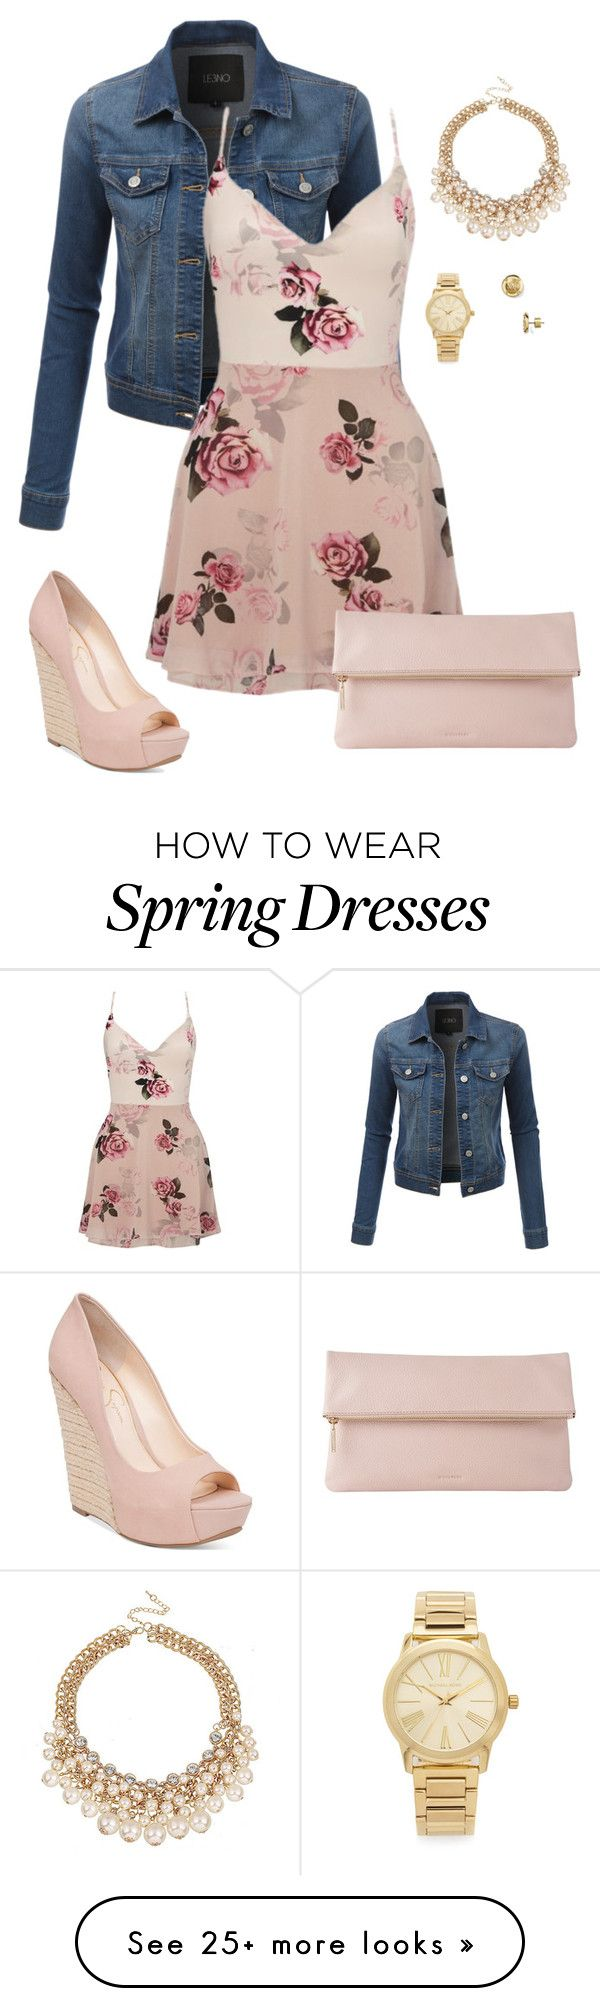 """""""Spring Is Here"""" by msnaomilynn on Polyvore featuring LE3NO, Lipsy, Jessica Simpson, Whistles, Michael Kors, denim, Clutch, Wedges, michaelkors and pinkflowers"""